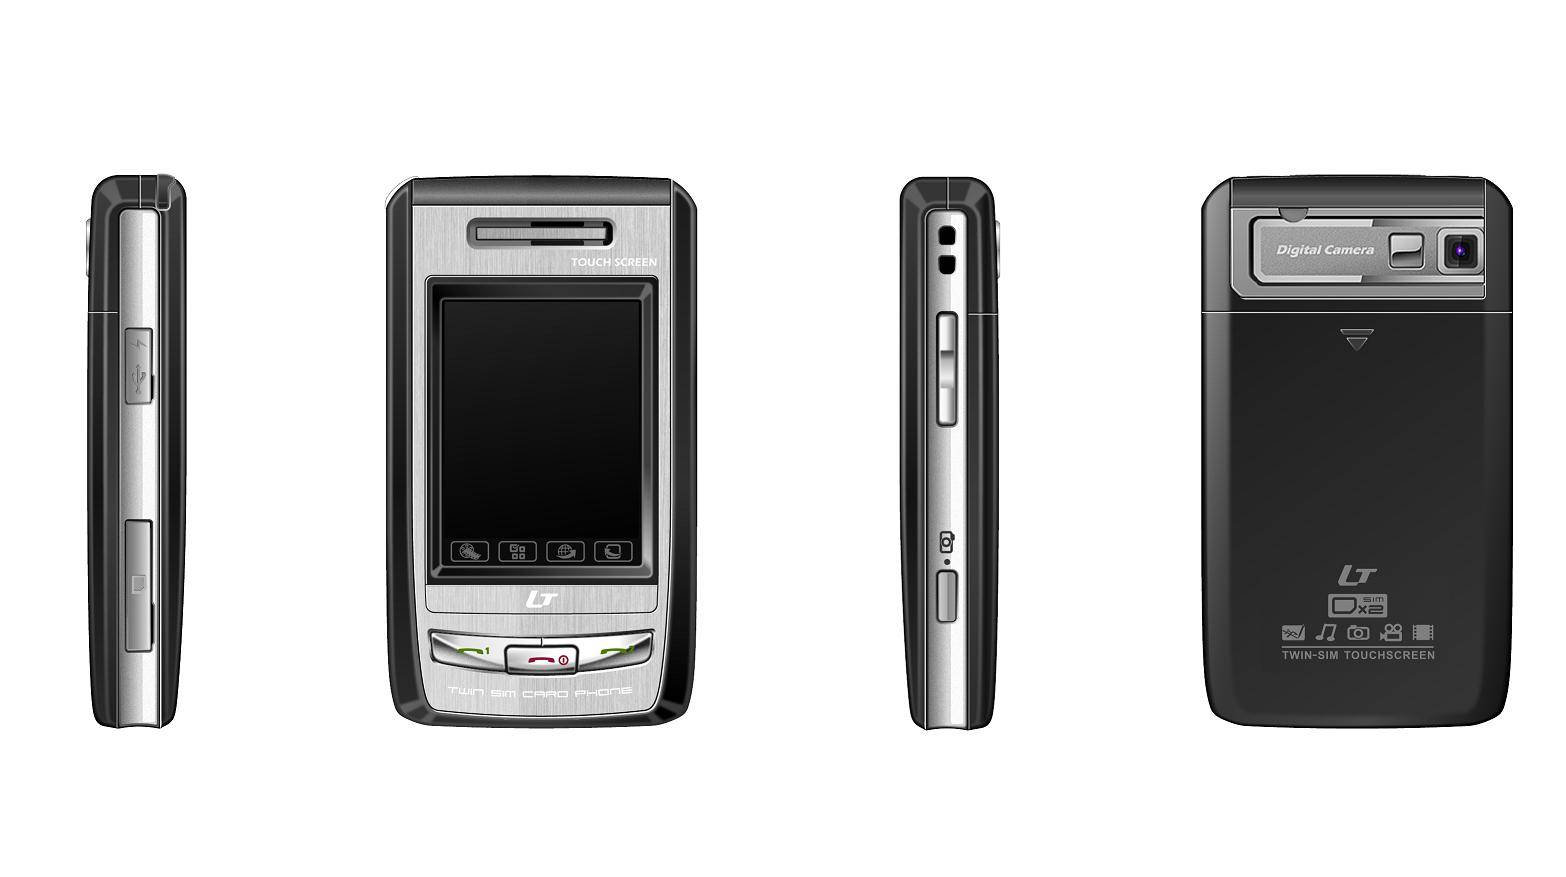 dual gsm, dual sim, dual working mobile phone (cell phone) X01